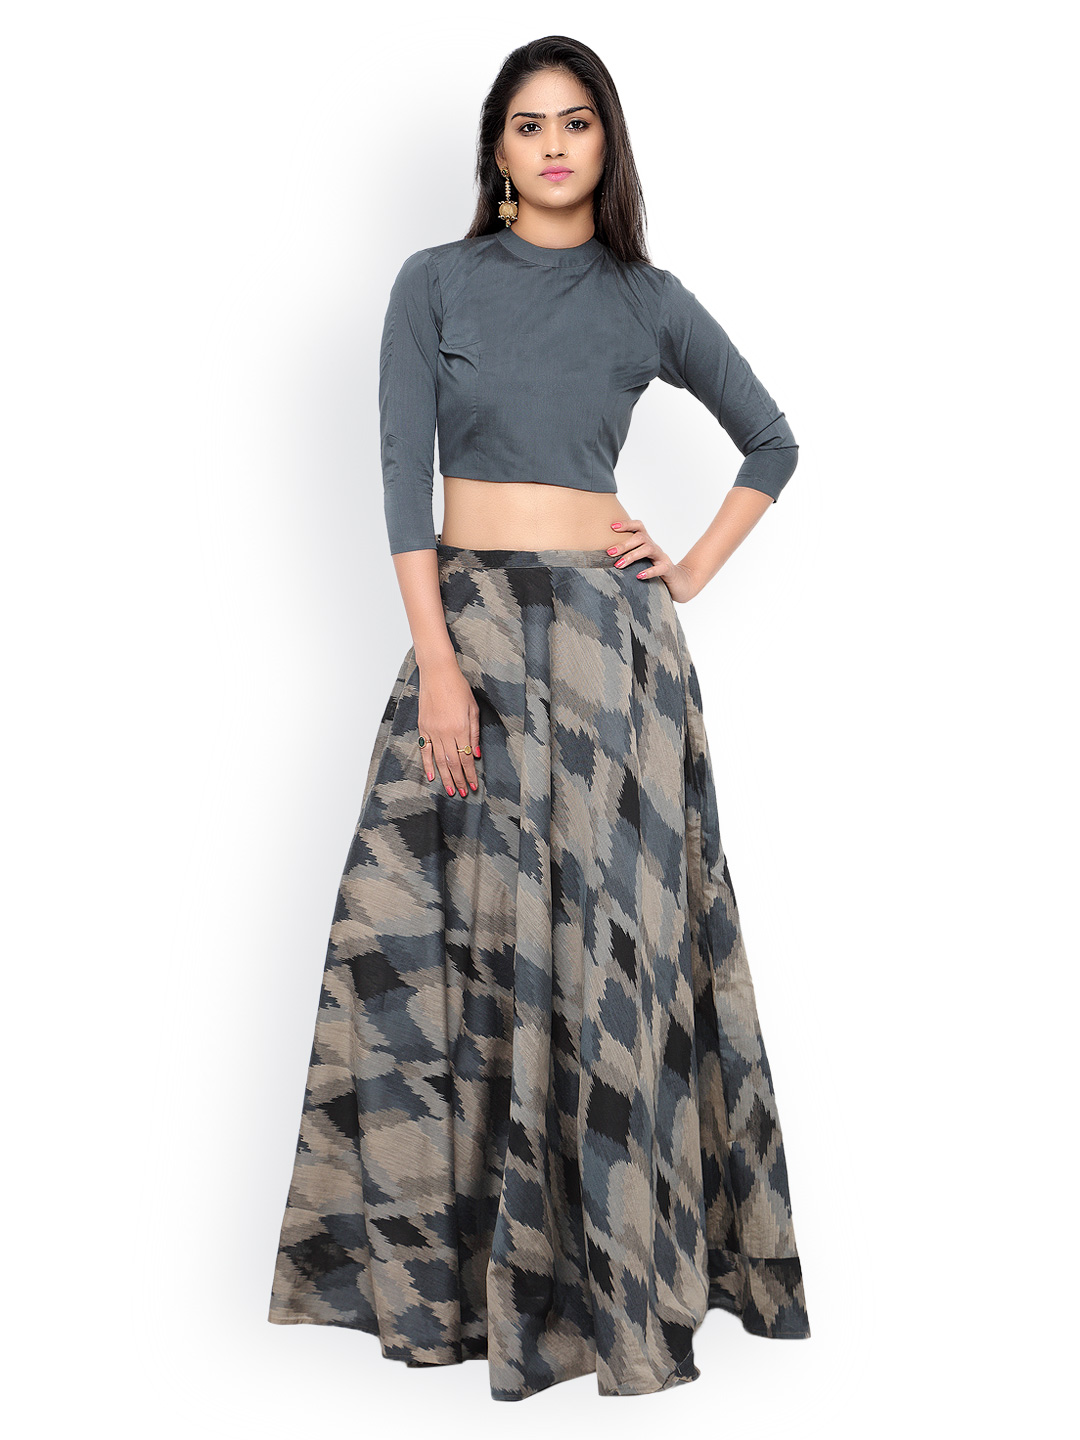 Inddus Grey & Black Ikat-Woven Banarasi Cotton Semi-Stitched Lehenga Choli Price in India